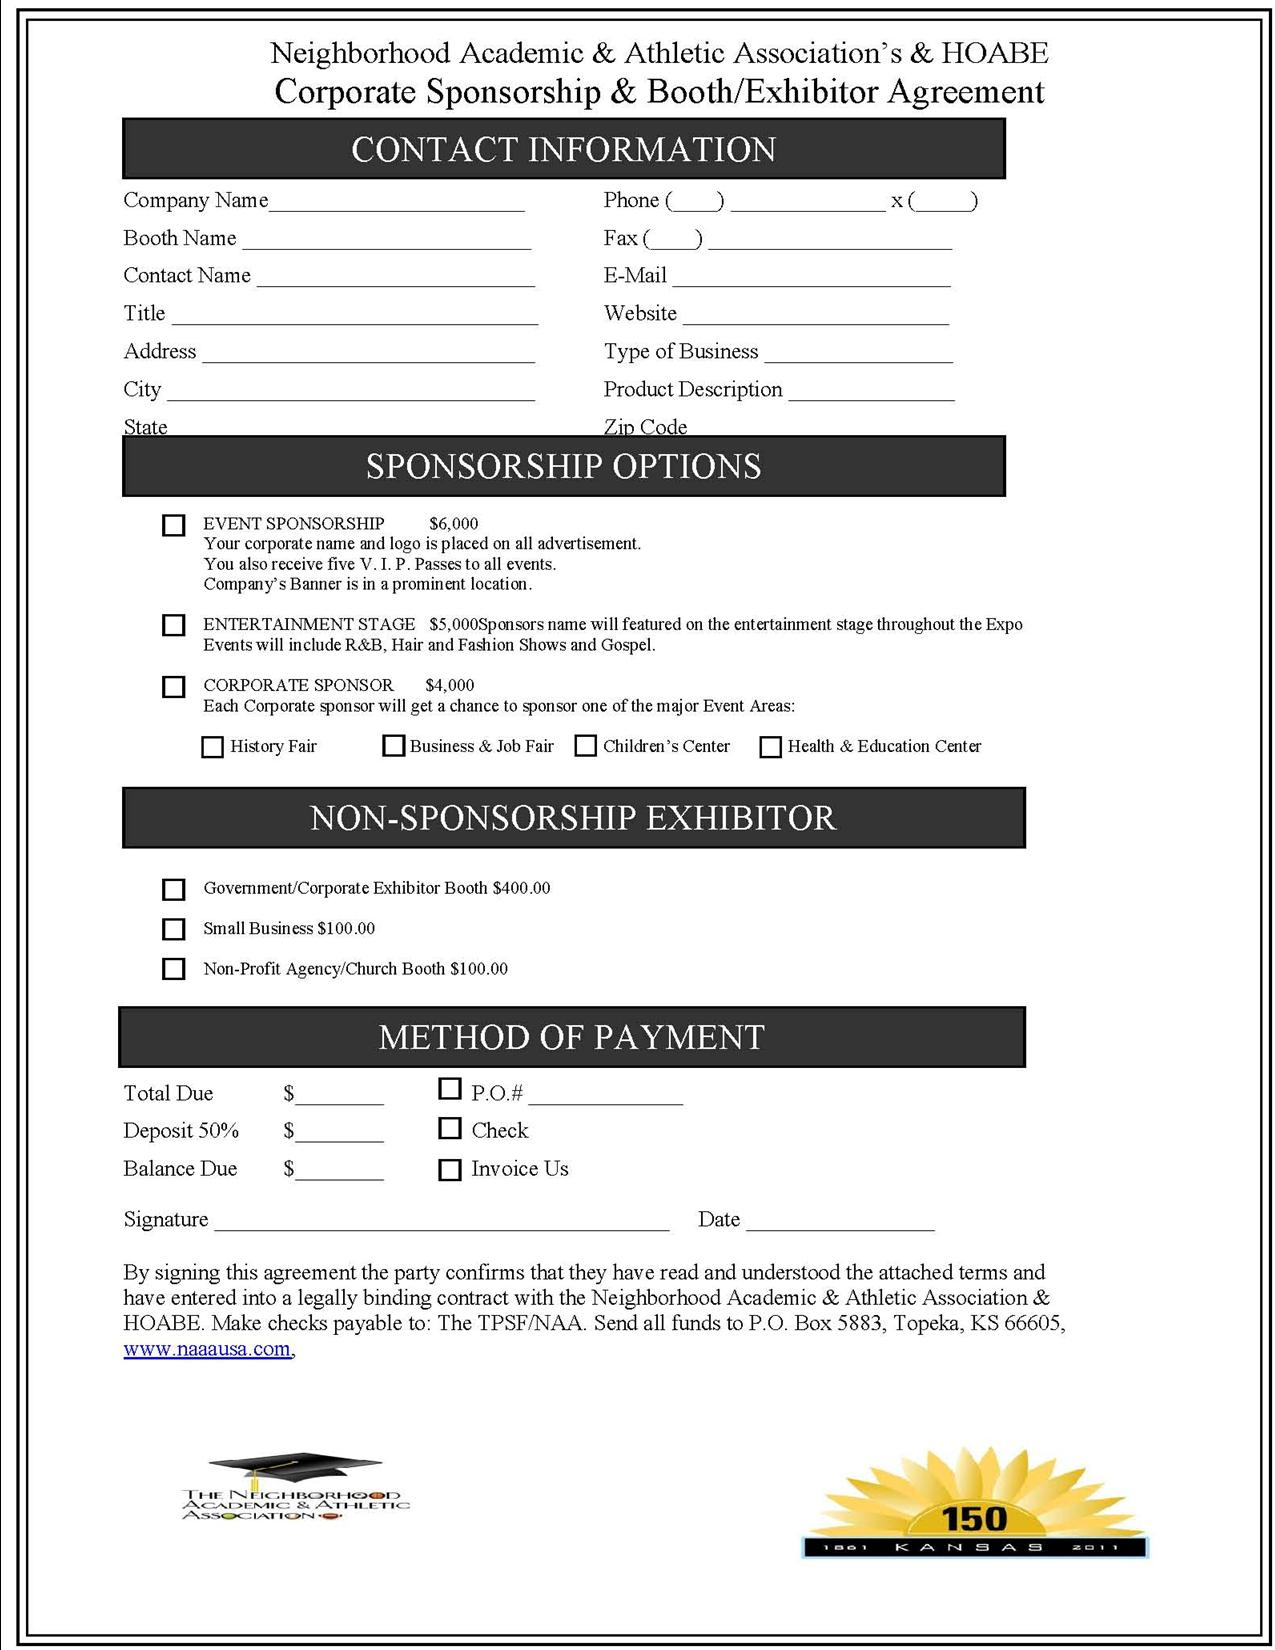 2013 Heart of America Black Booth  Sponsorship Form 7-10-2013